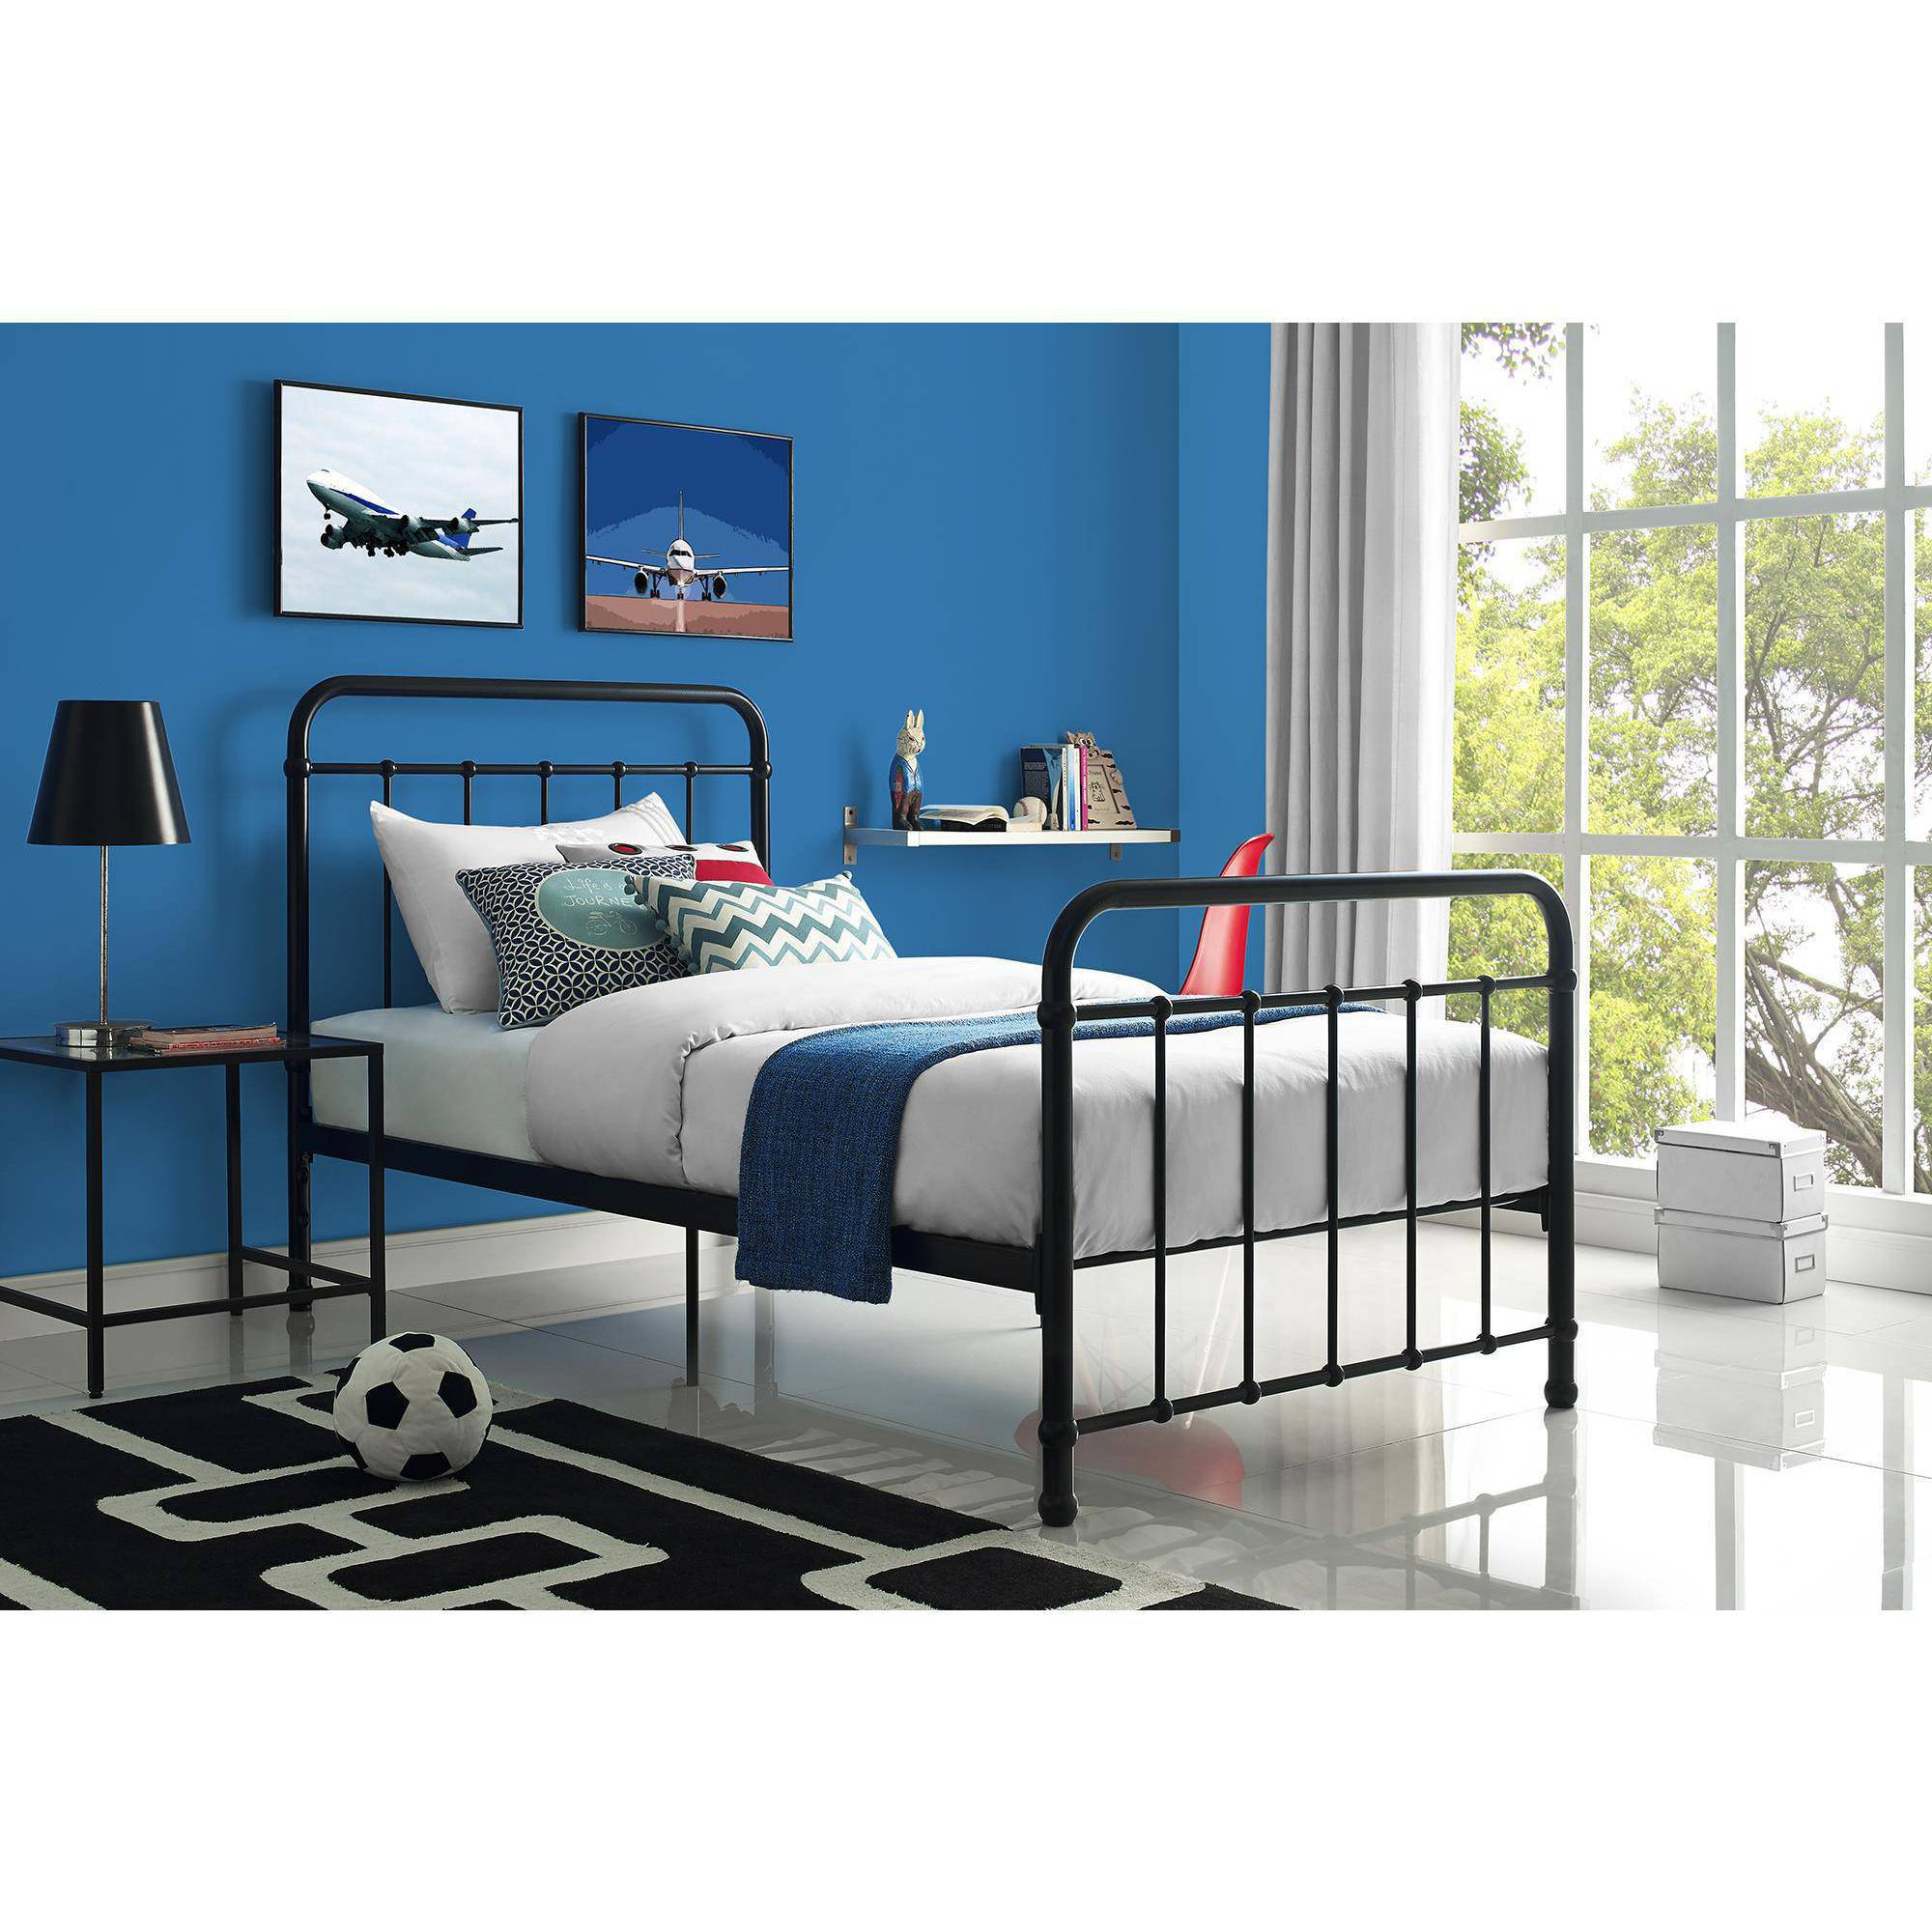 split headboard base adjustable and connect frame bed rails footboard to metal target instructions king